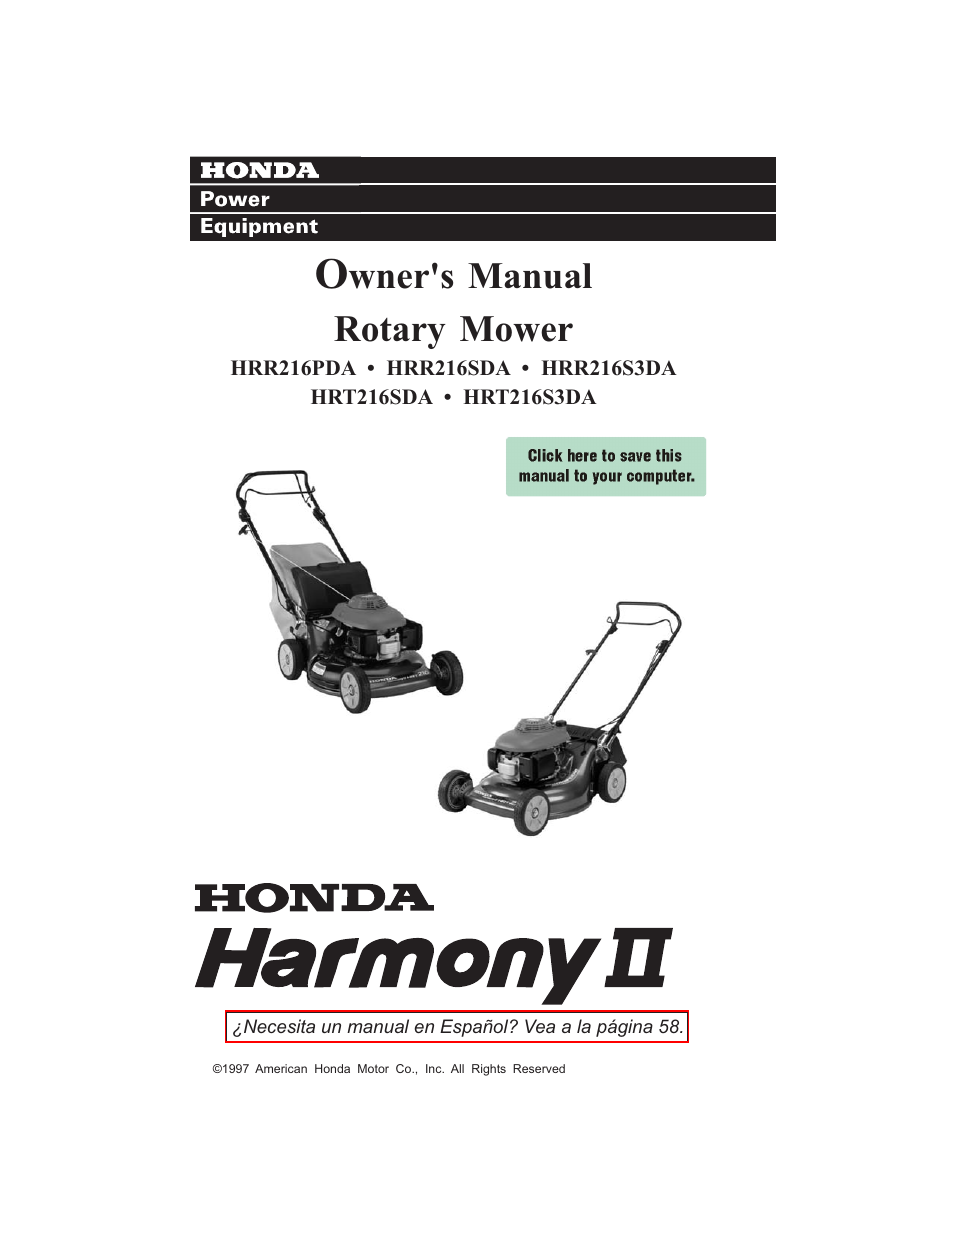 HONDA HRR216S3DA User Manual | 66 pages | Also for: HRR216PDA, HRR216SDA,  HRT216SDA, HRT216S3DA